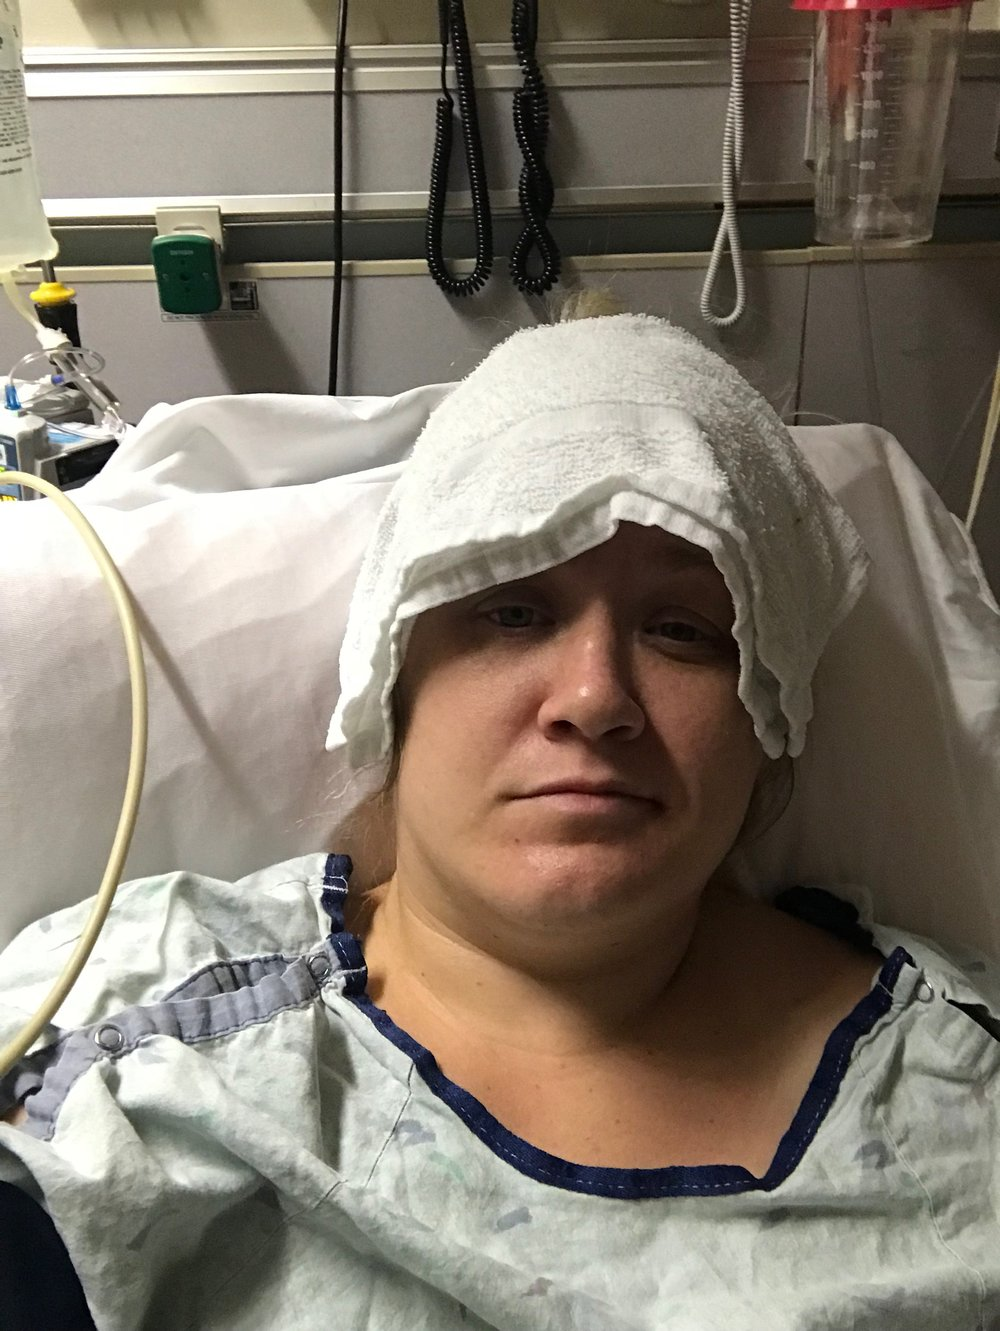 Aaaannd…. Here I am in the ER. I've just had an IV inserted and they pushed pain and nausea meds. In the photo I'm trying not to pass out, hence the cold towel on my head. About 11 hours later I would have it surgically removed.